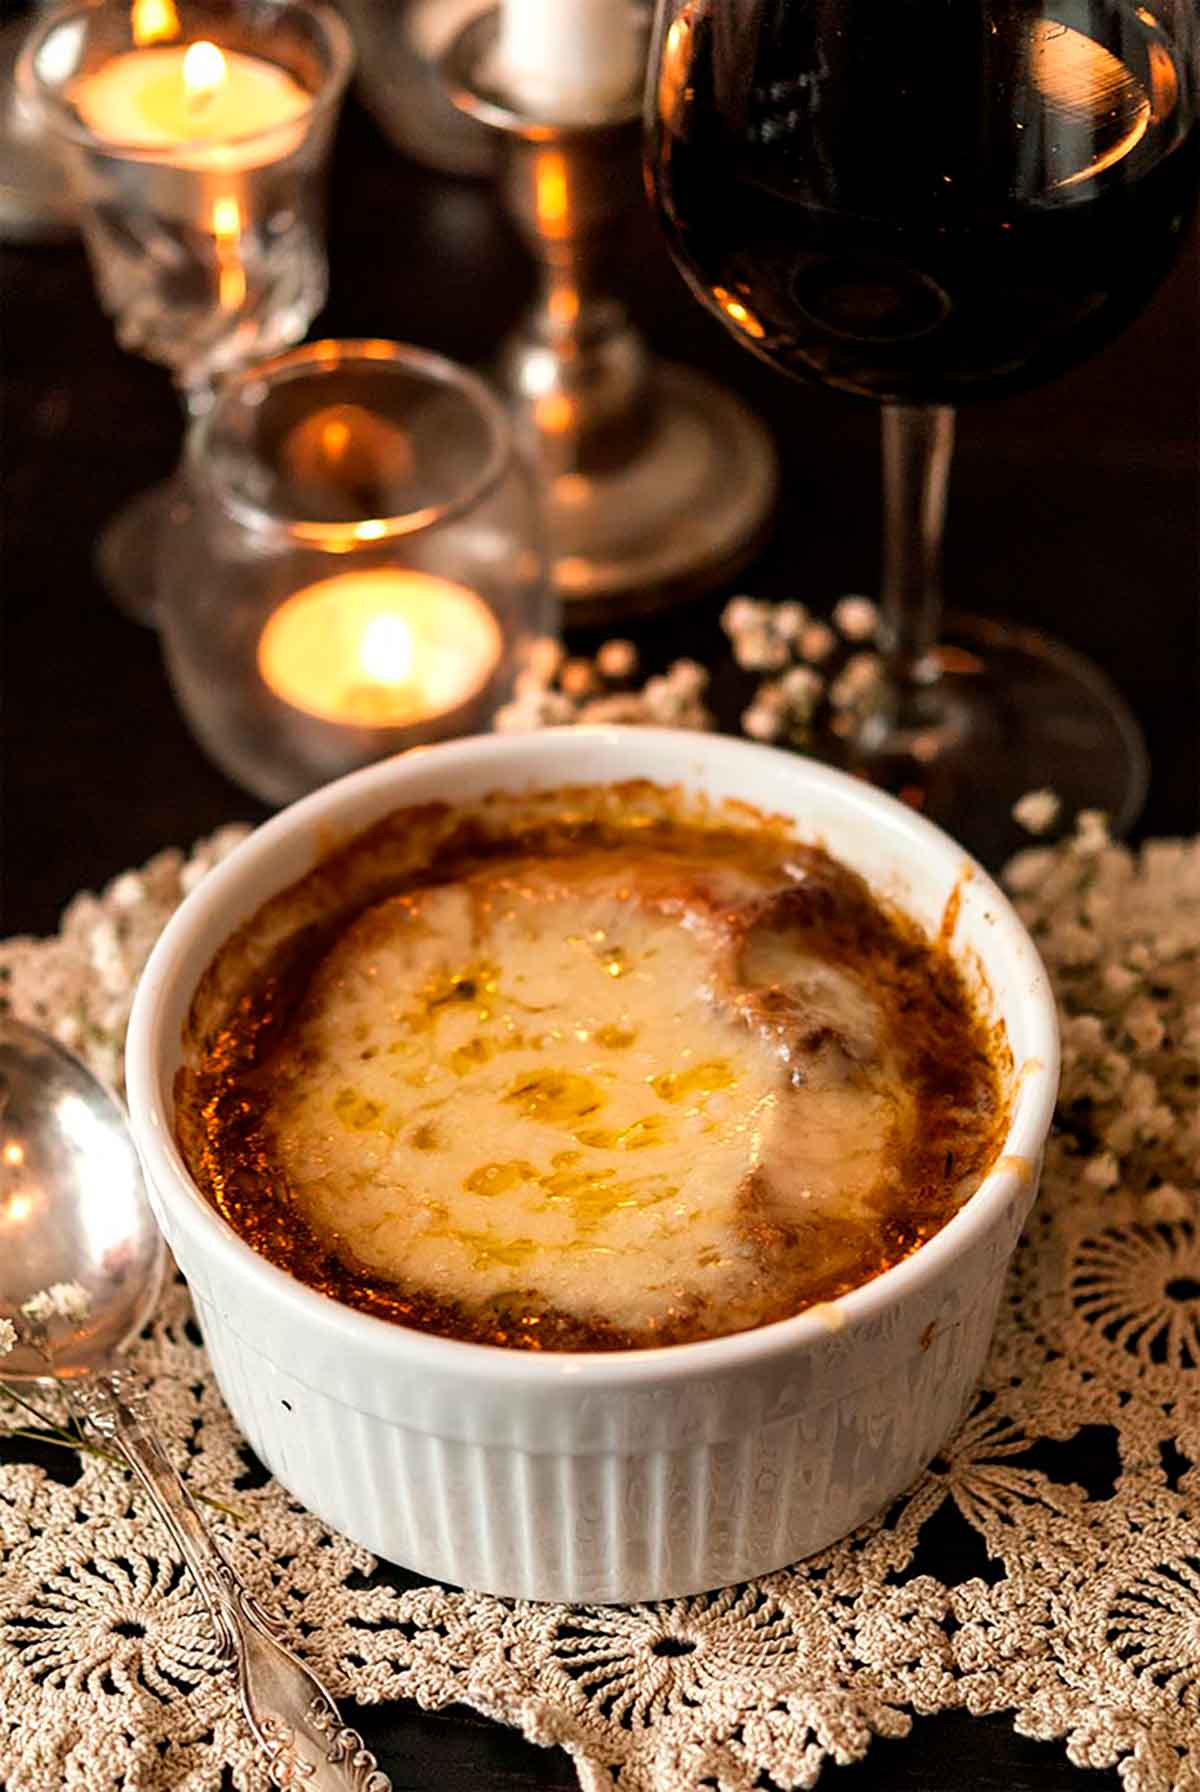 A bowl of French onion soup on a small lace doily in front of a candle, candle stick and glass of red wine.